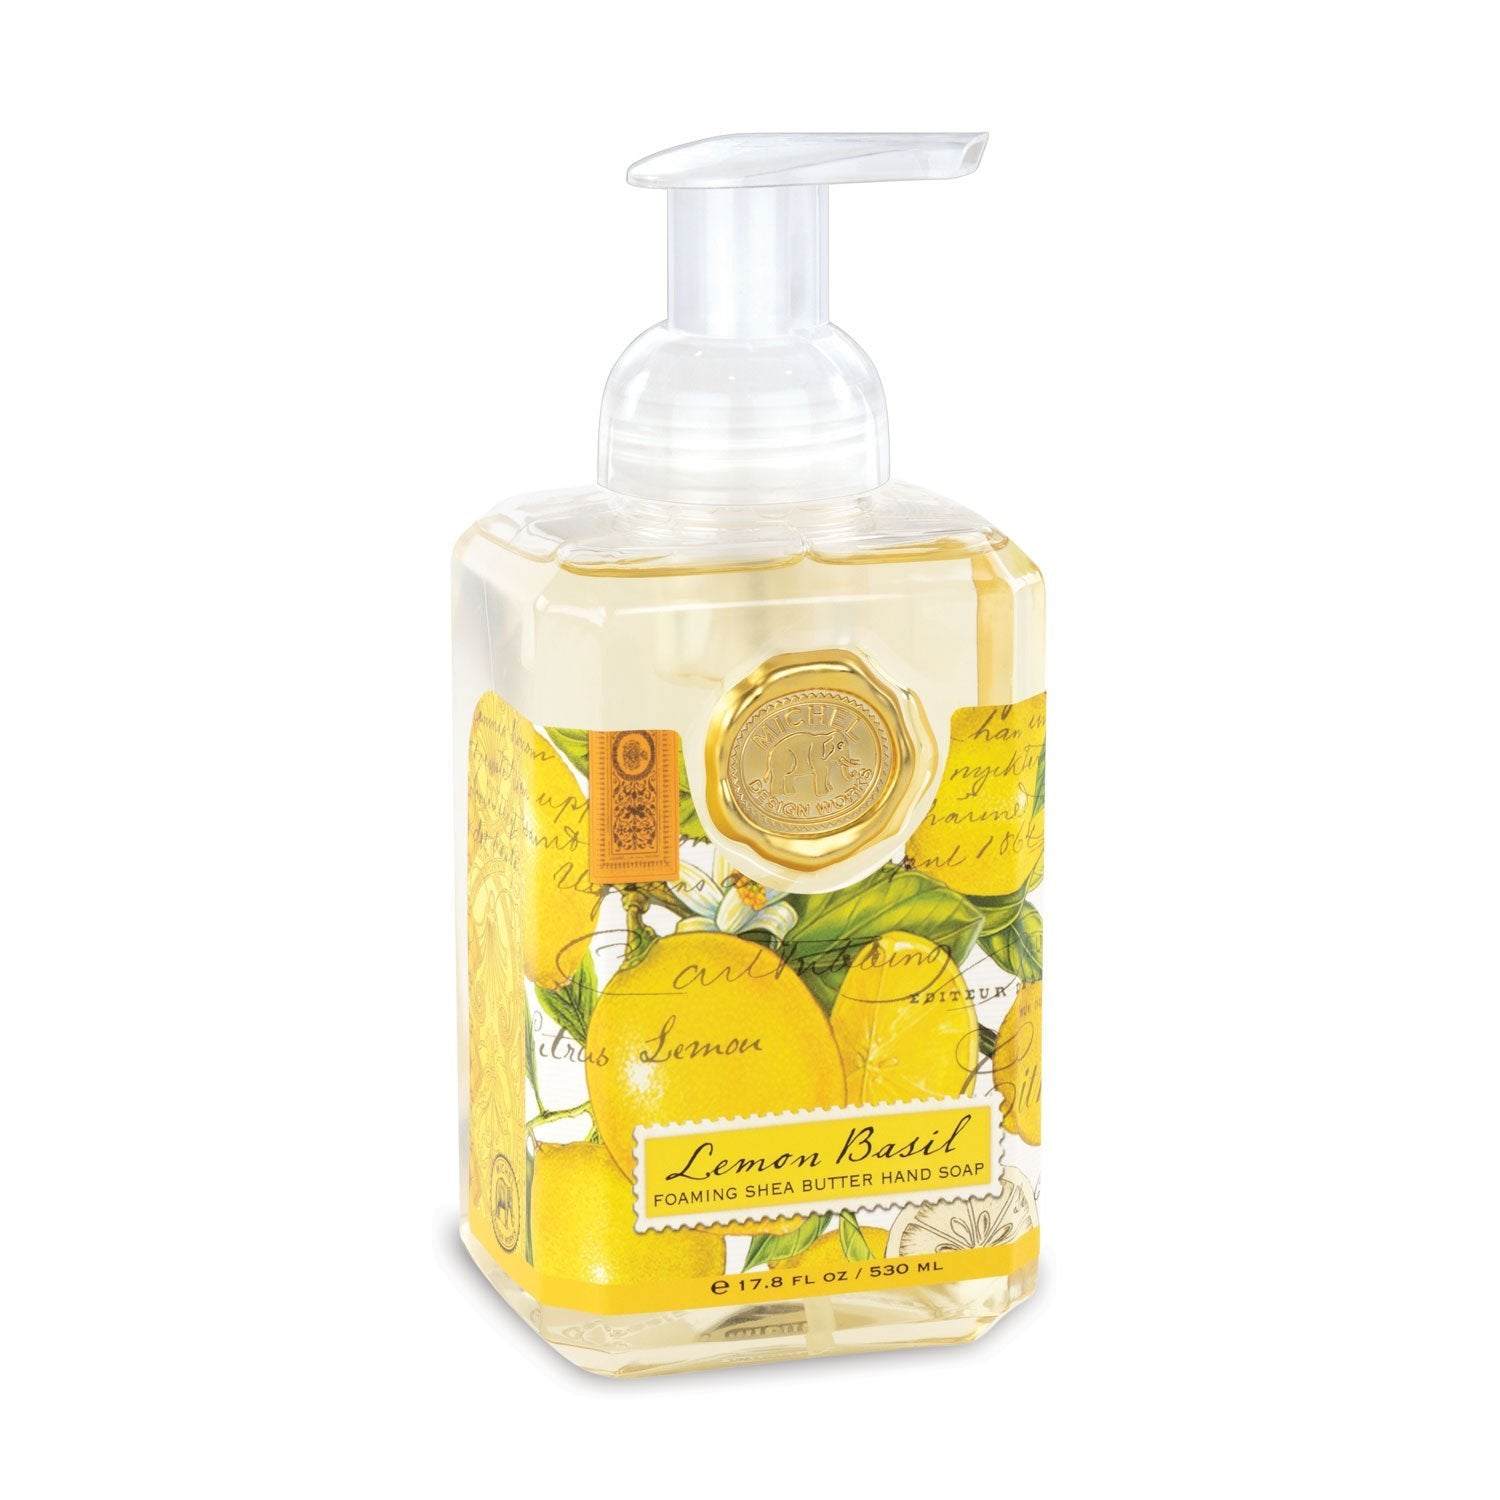 Lemon Basil Foaming Hand Soap 17.8 fl. oz.